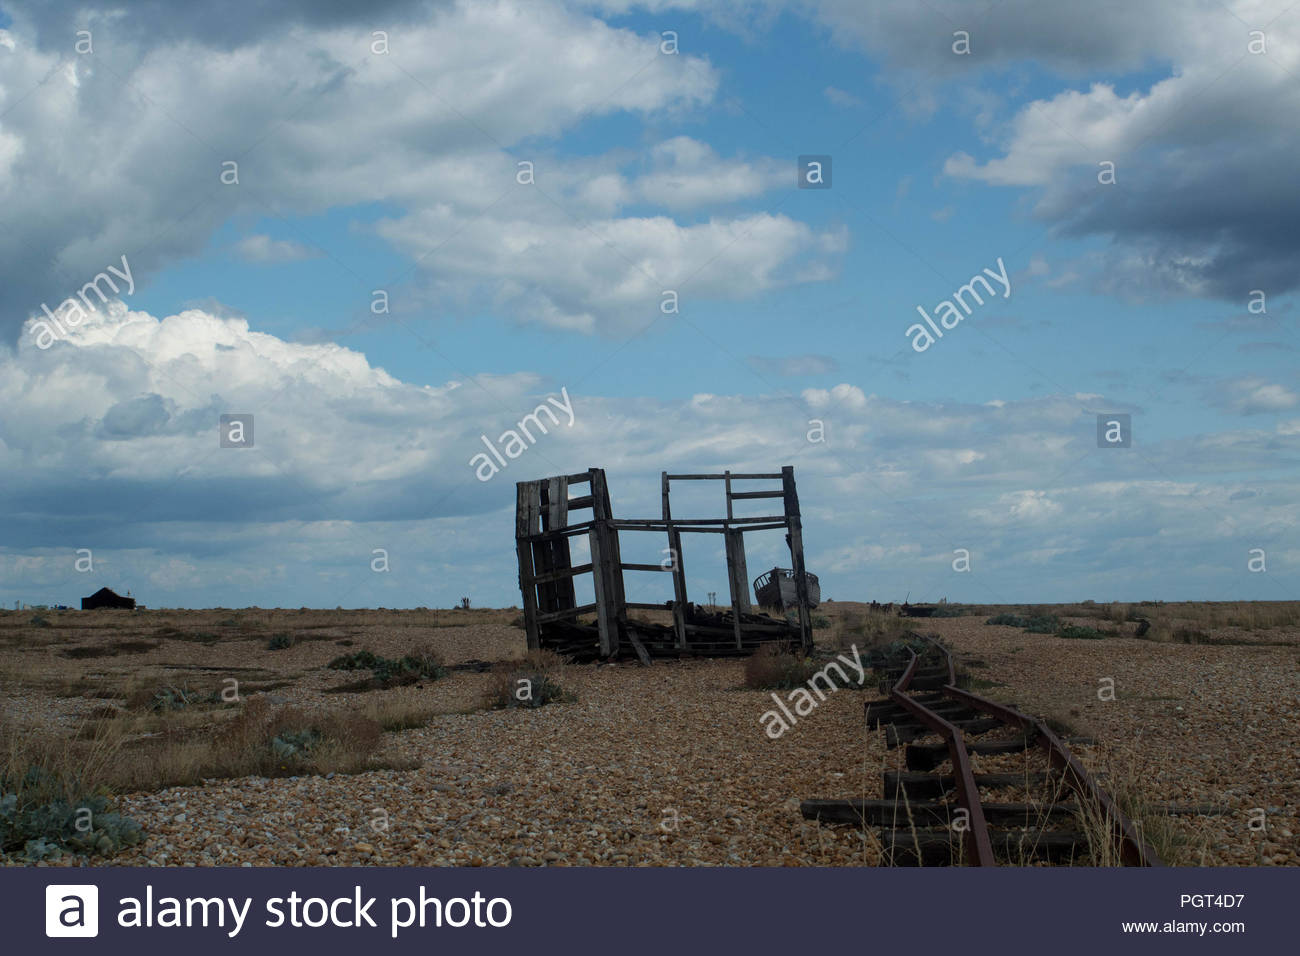 Travel & Tourism - Wild Locations -Go West Series. Abandoned railtrack remote isolation &  beauty in one of Britain's best Wild Places,Dungeness, UK. - Stock Image